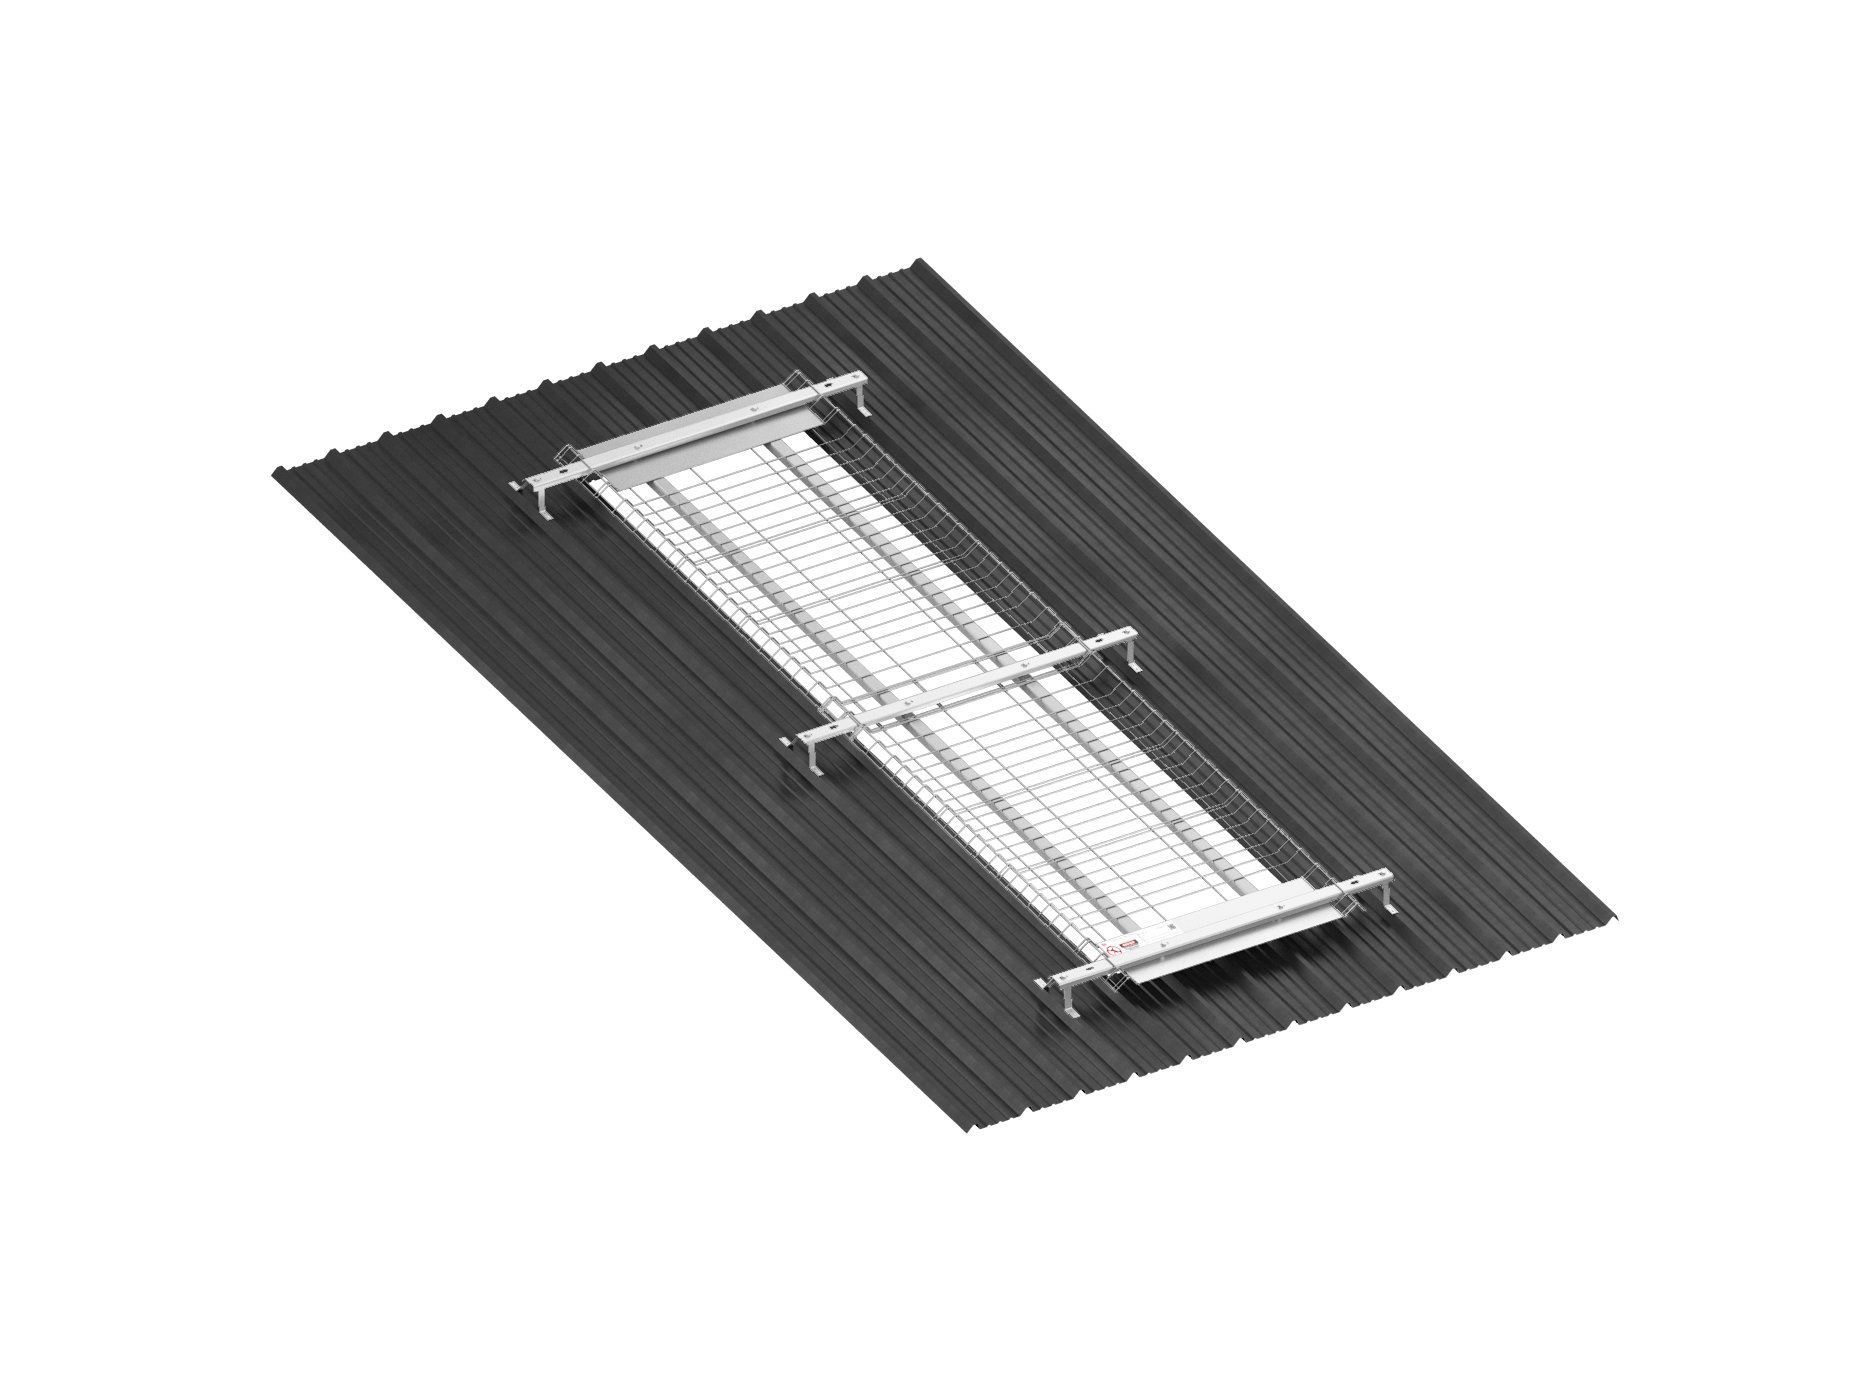 Skylight Roof Safety Protection Edge Protection Safety Net Fan Fall Arrest UAE DUbai Saudi Arabia Kuwait qatar Oman Bahrain SHarjah Abu dhabi Egypt TSS Total Safety SOlution 07 ISometric